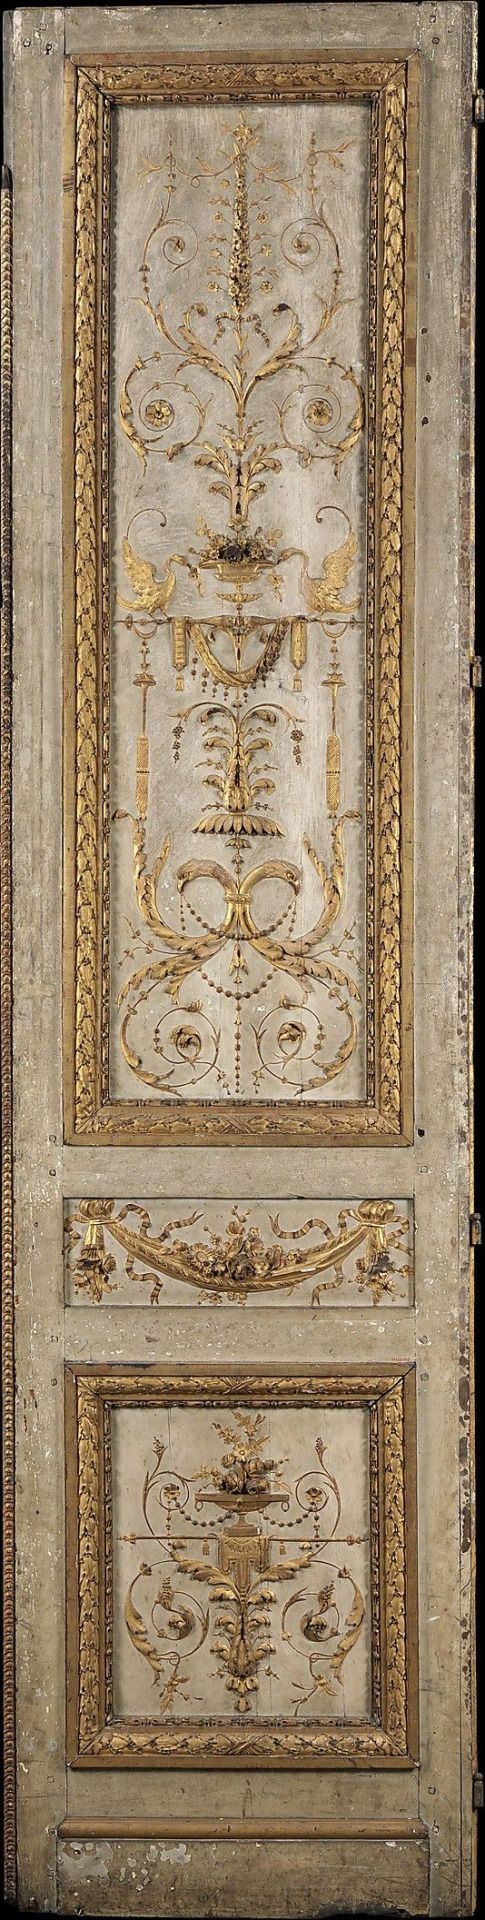 door Panel from Tuileries palace Louis XVI